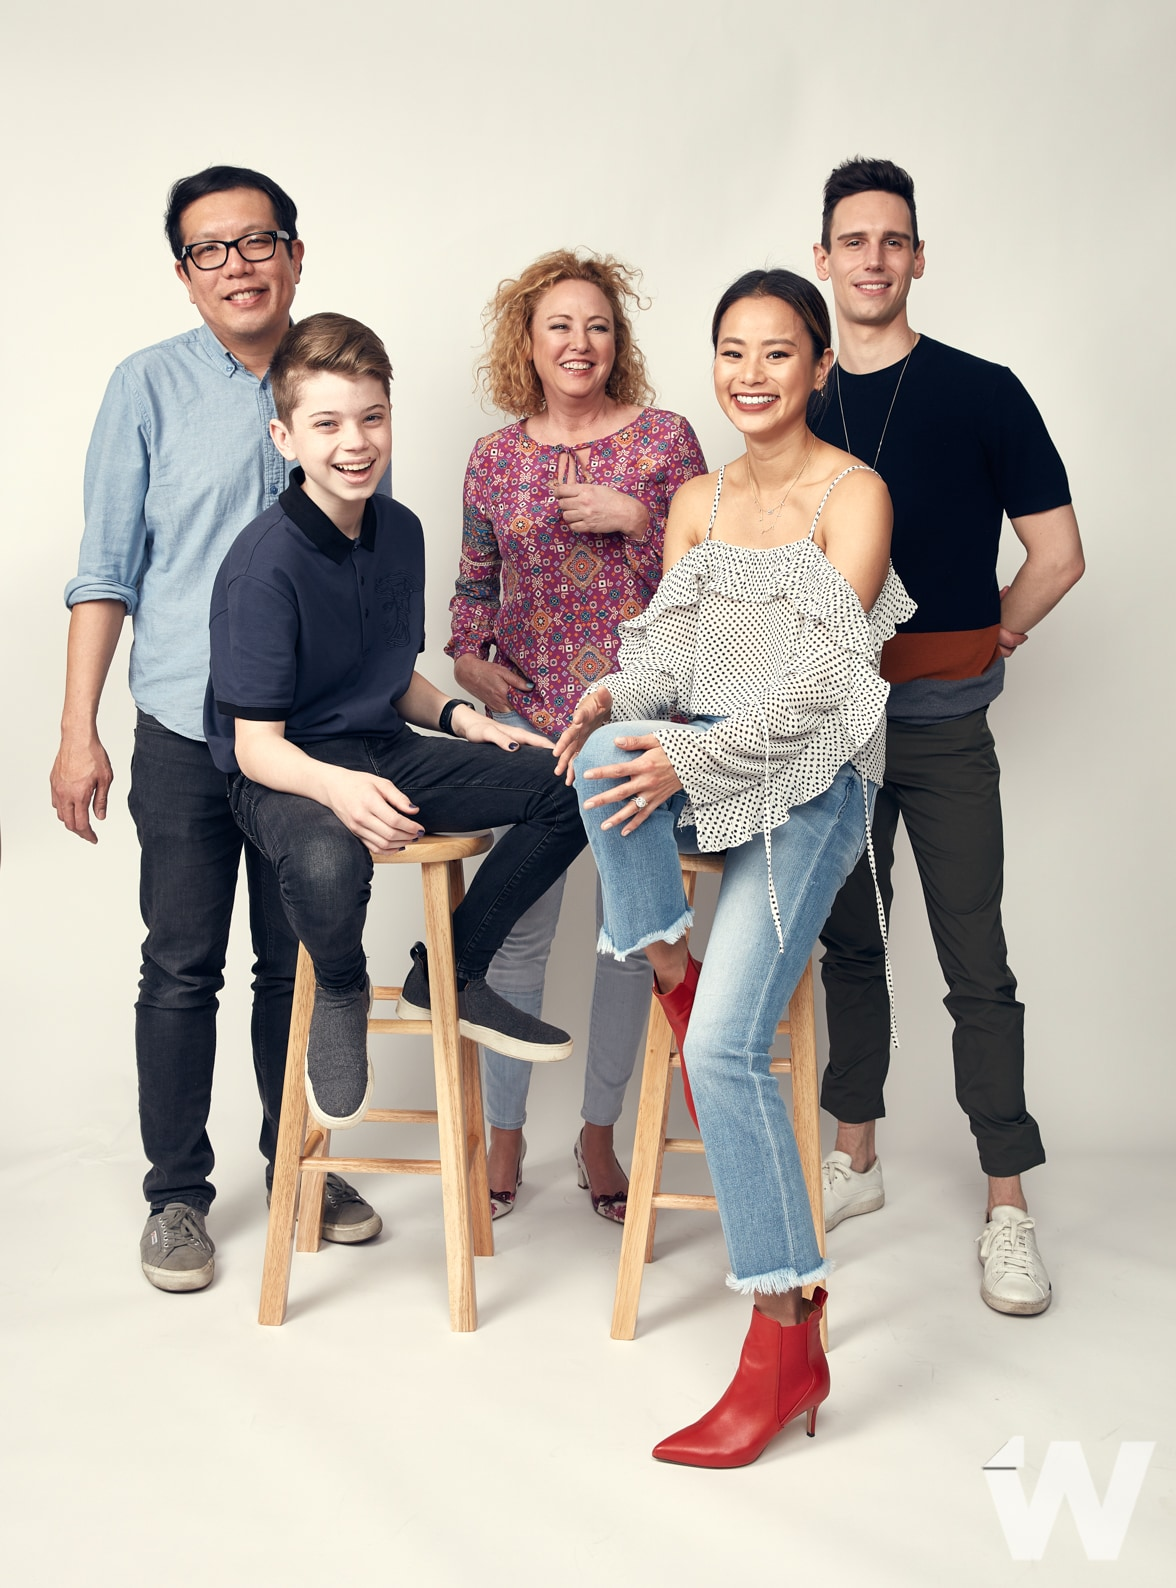 SXSW 2018 Yen Tan, Aidan Langford, Virginia Madsen, Jamie Chung, cory michael smith 1985